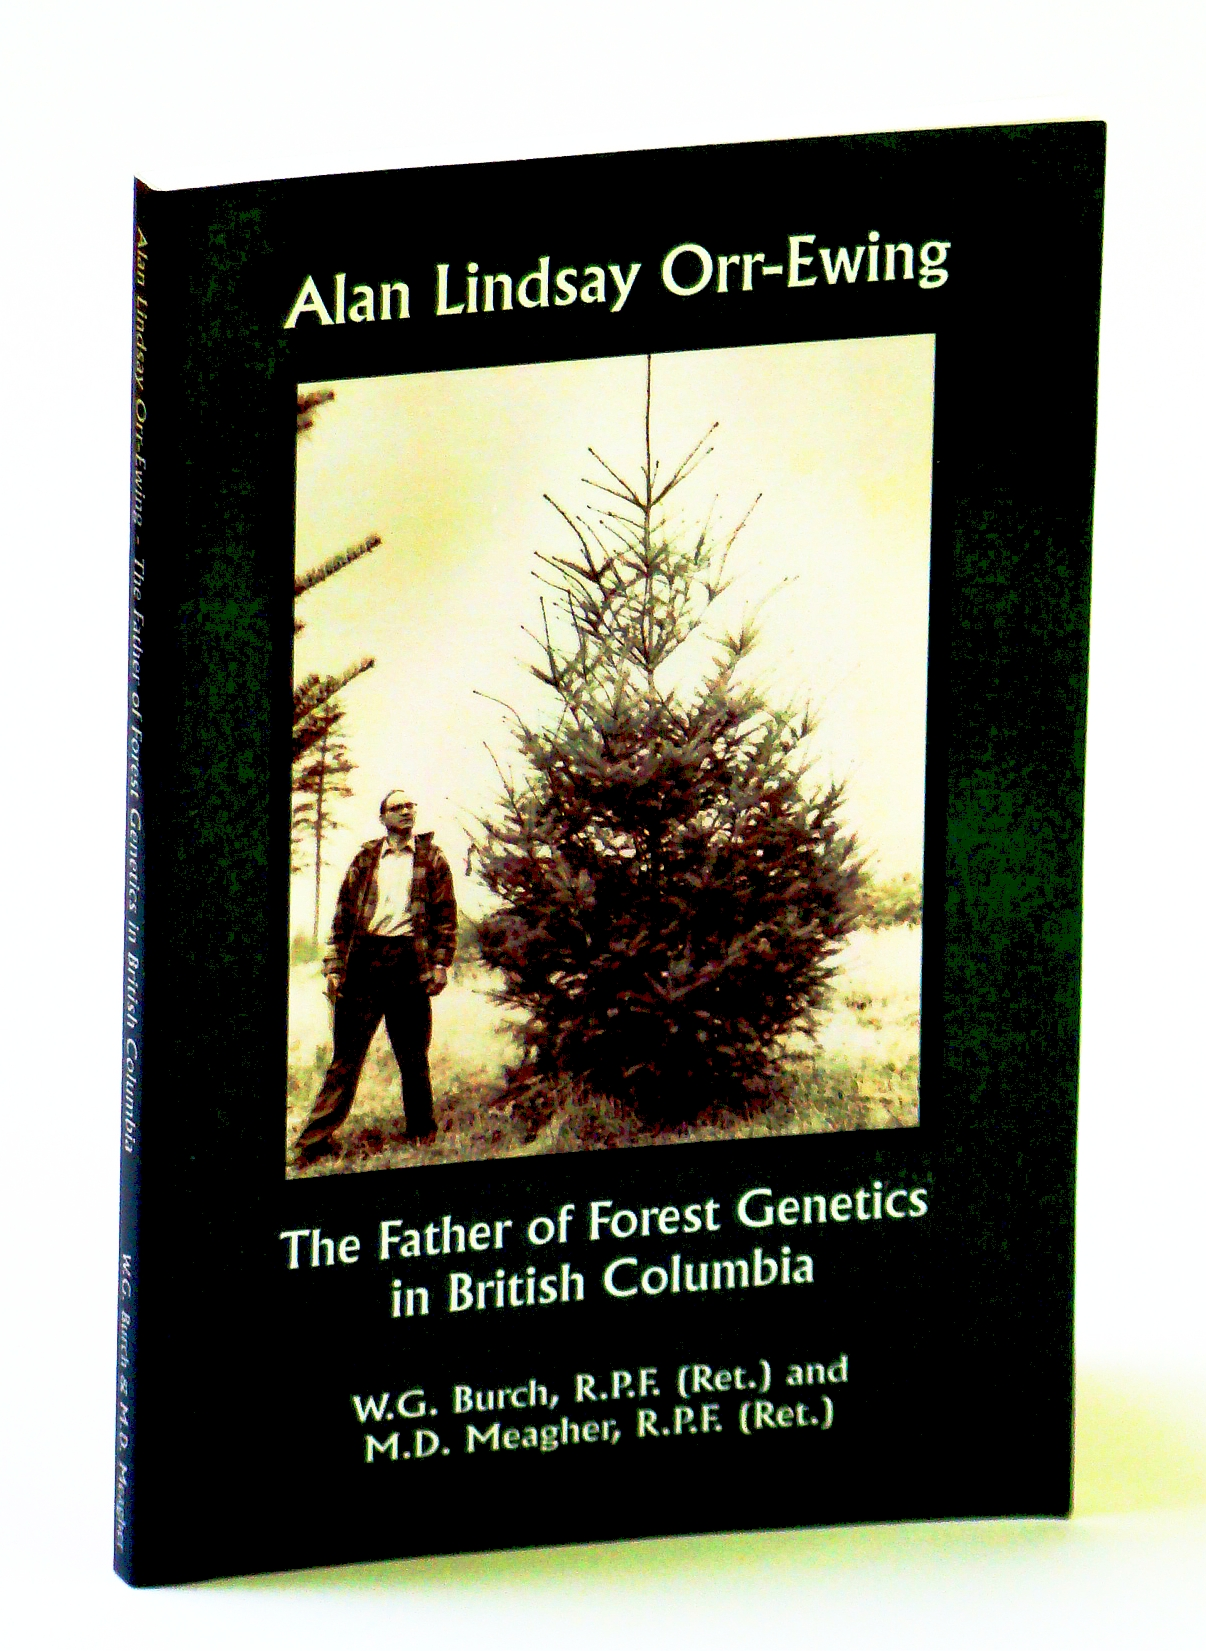 Image for Alan Lindsay Orr-Ewing: The Father of Forest Genetics in British Columbia